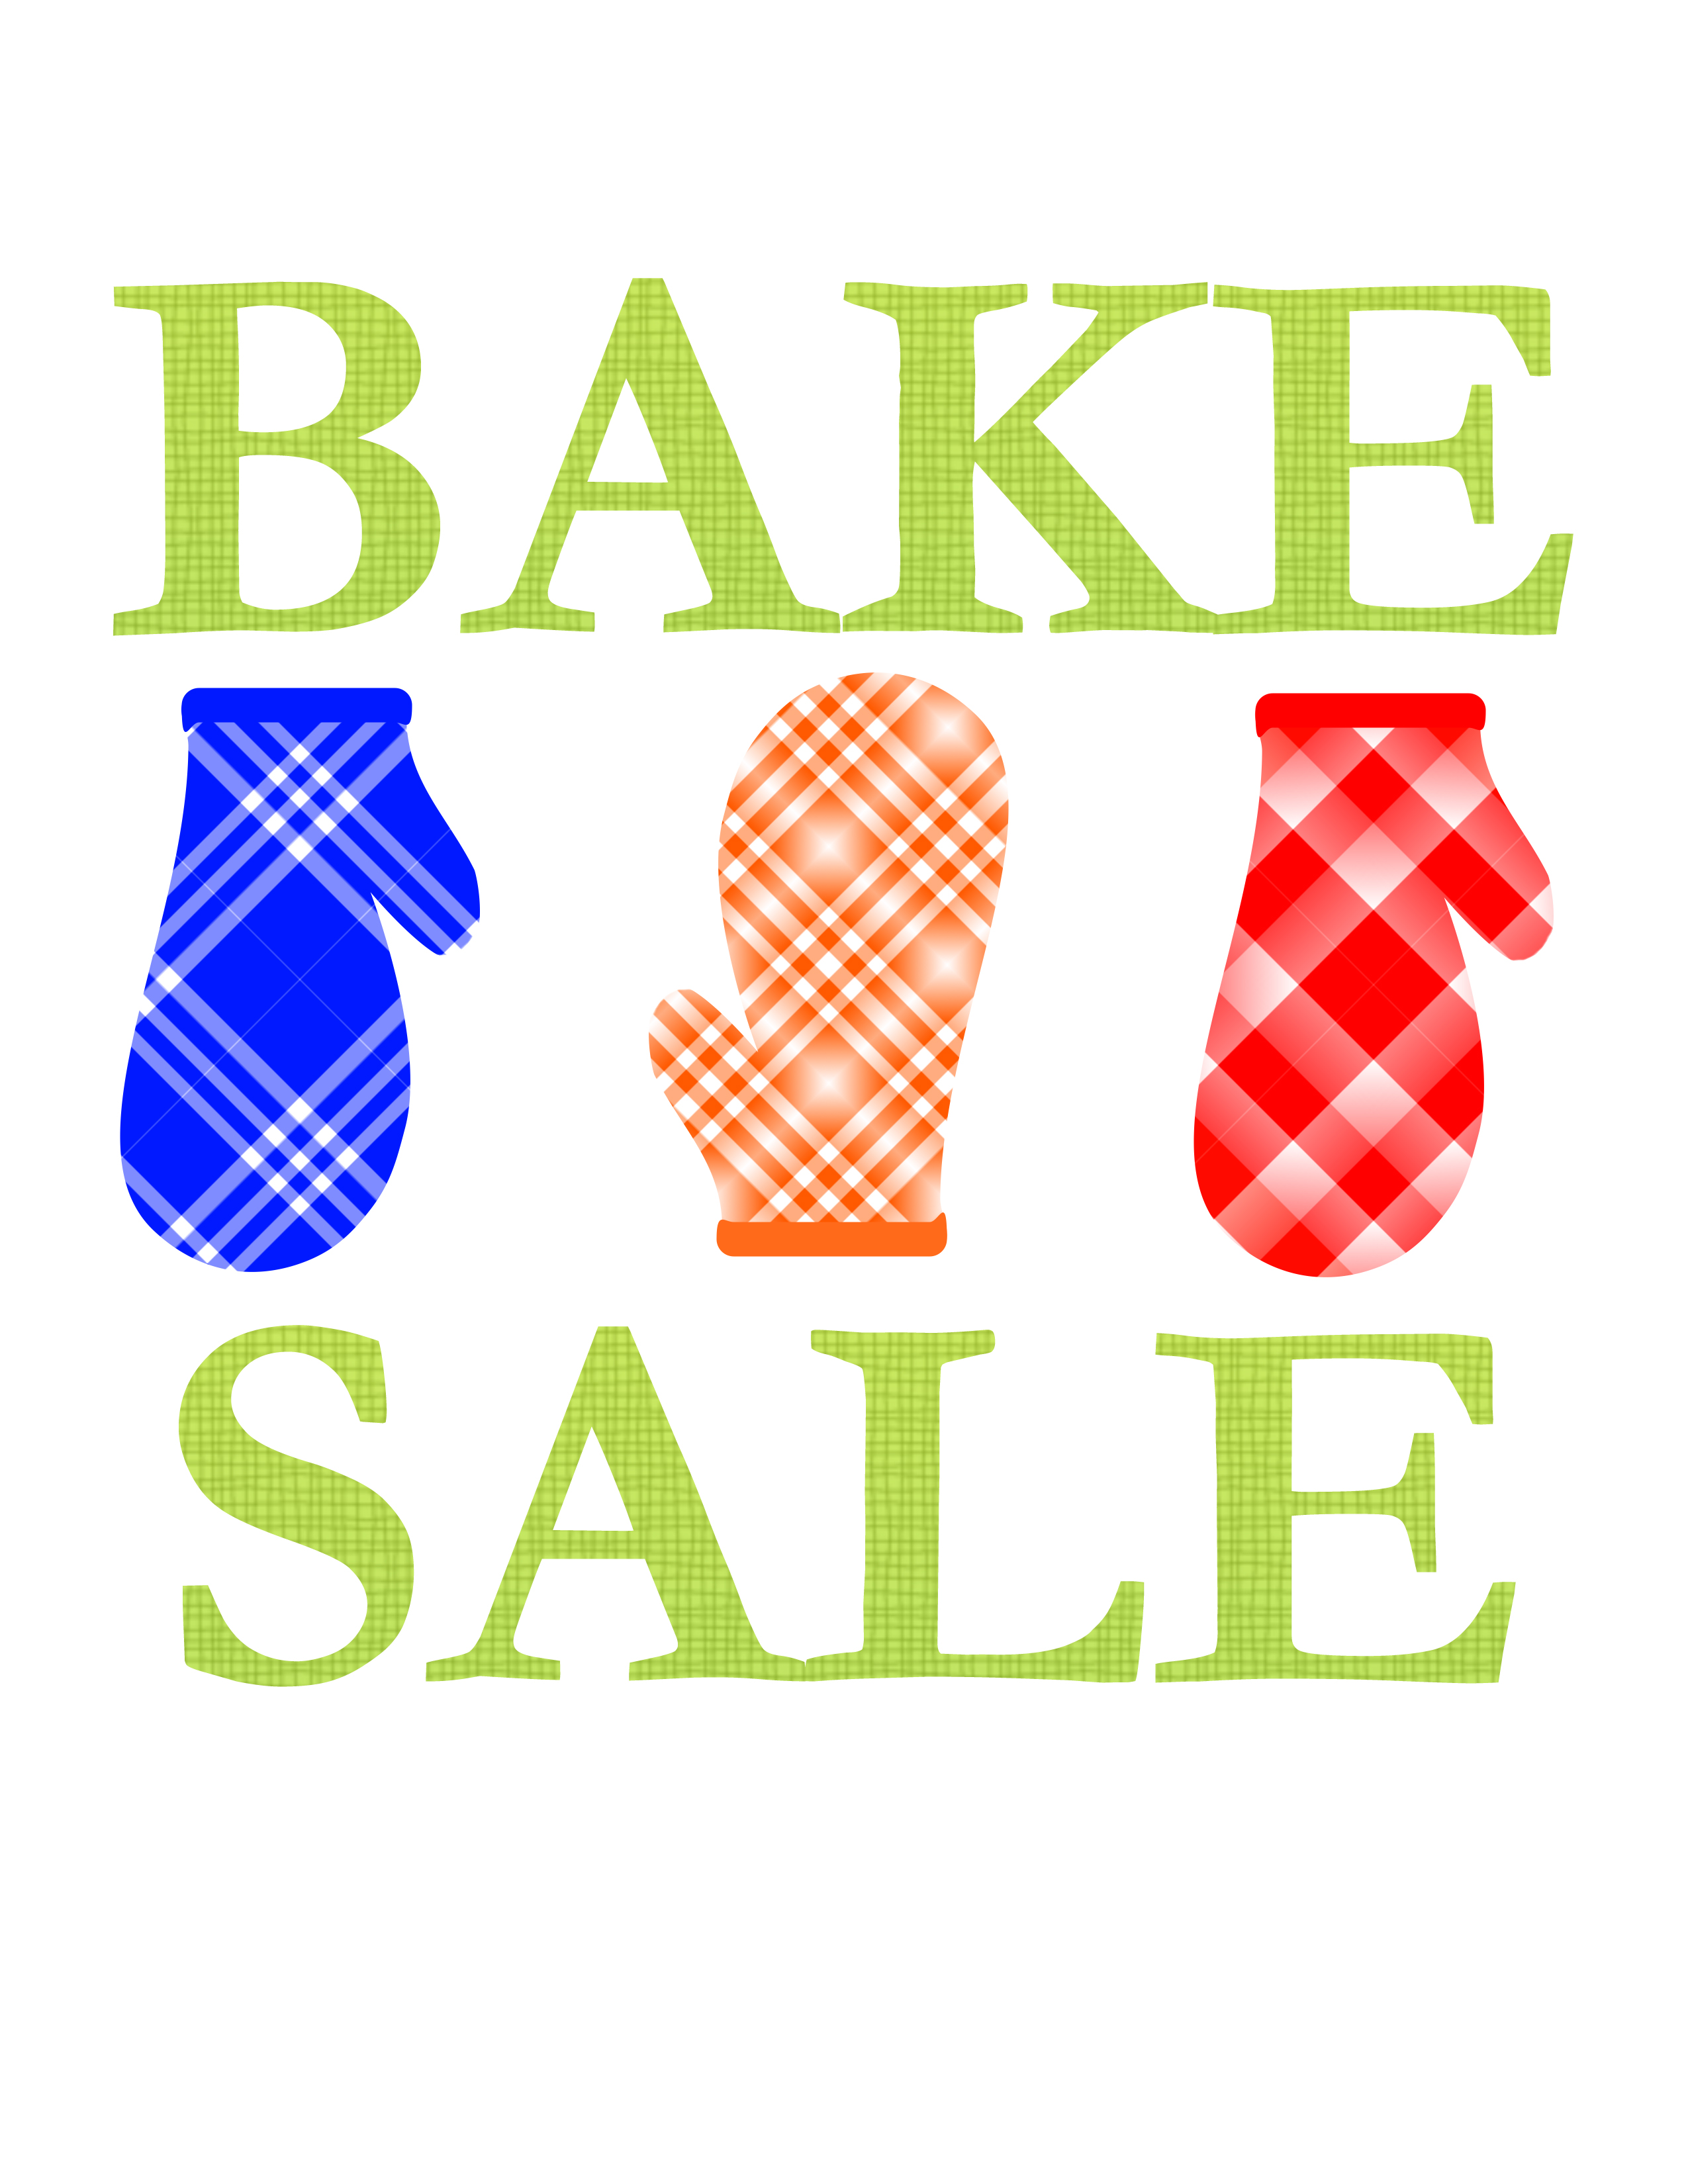 bake sign clipart clipart kid baking cookies clip art clipart panda clipart images